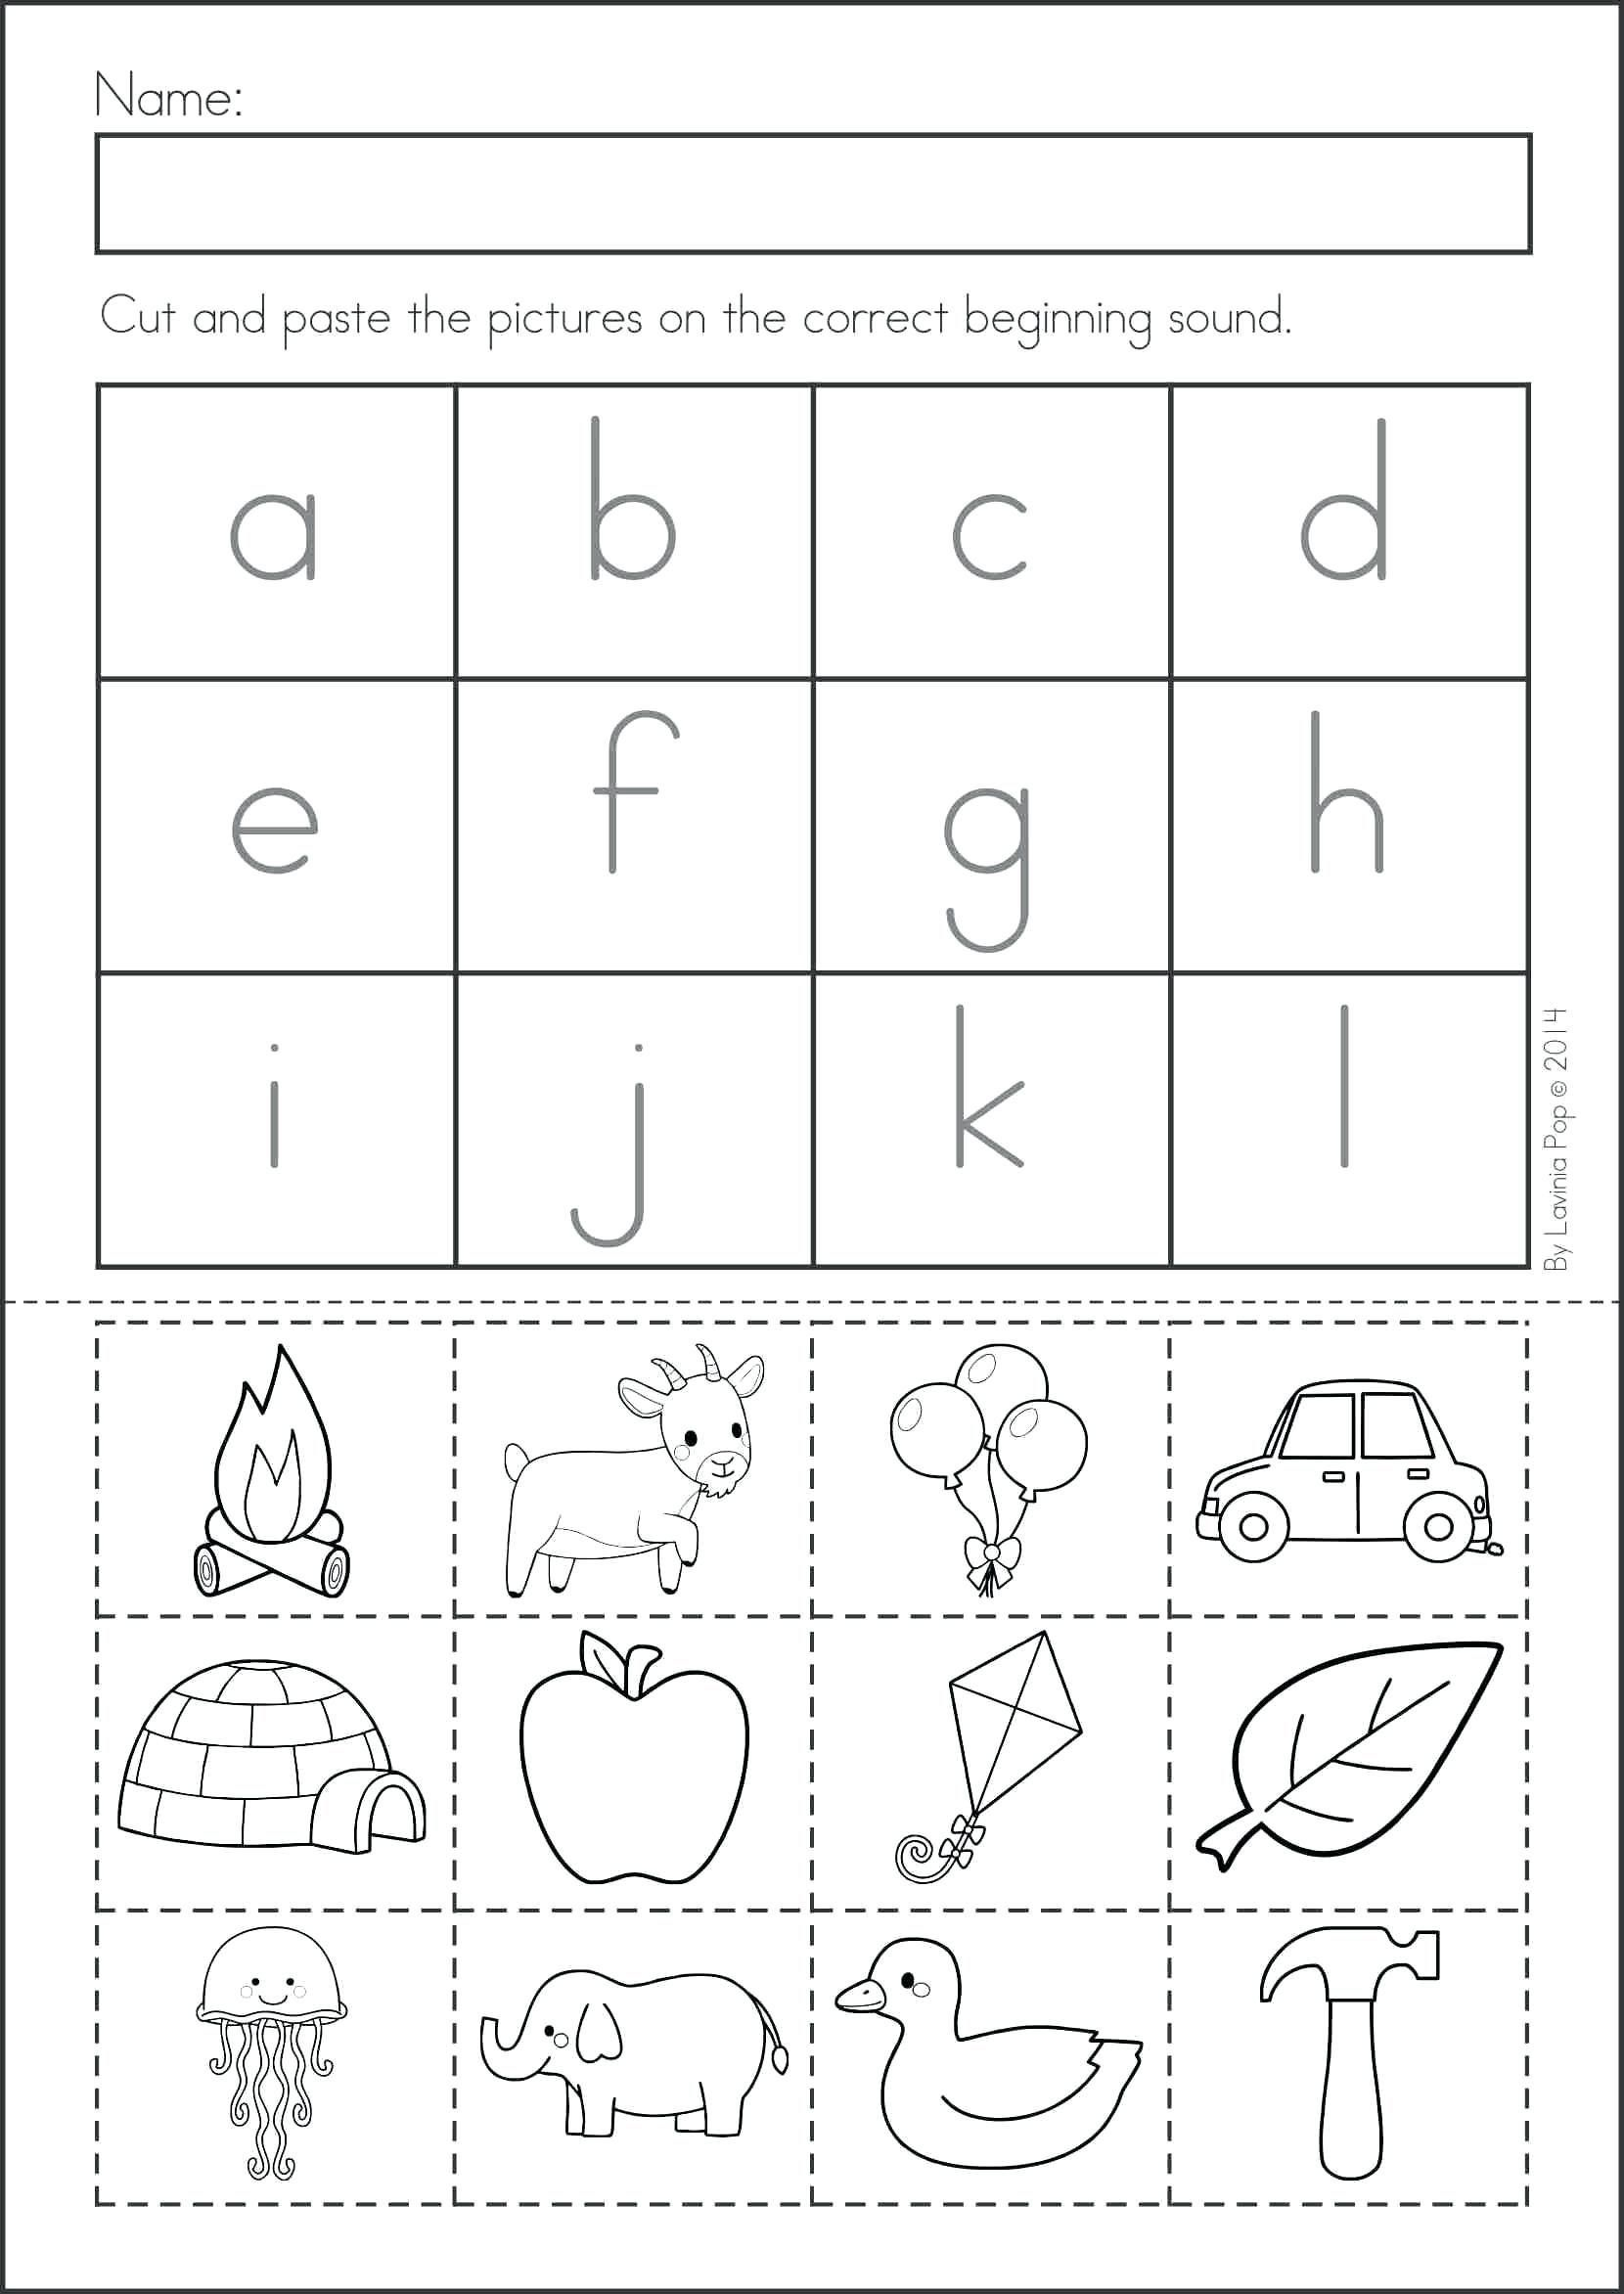 Pin On Free Kindergarten Worksheets Cut and paste addition worksheets free